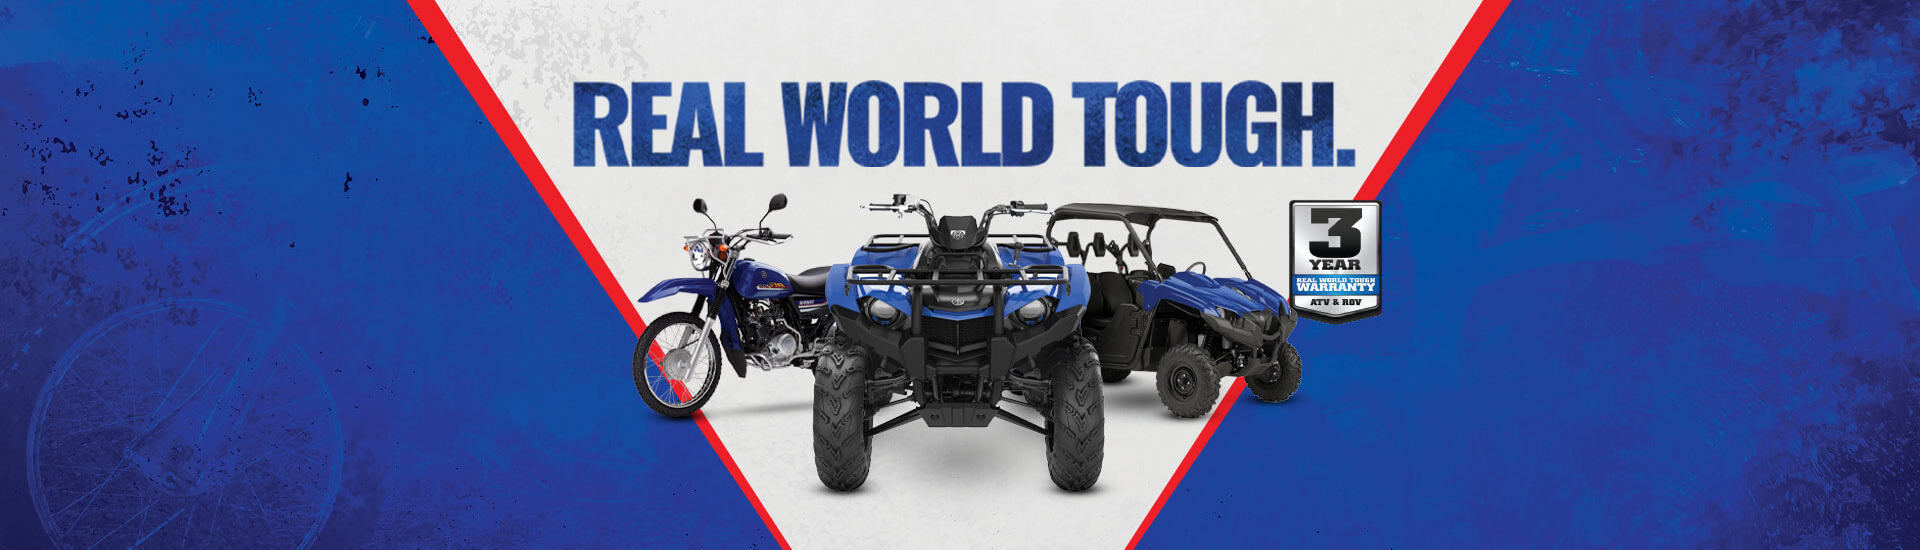 https://www.yamahas.nz/i/Images/promos/Specials_1.jpg